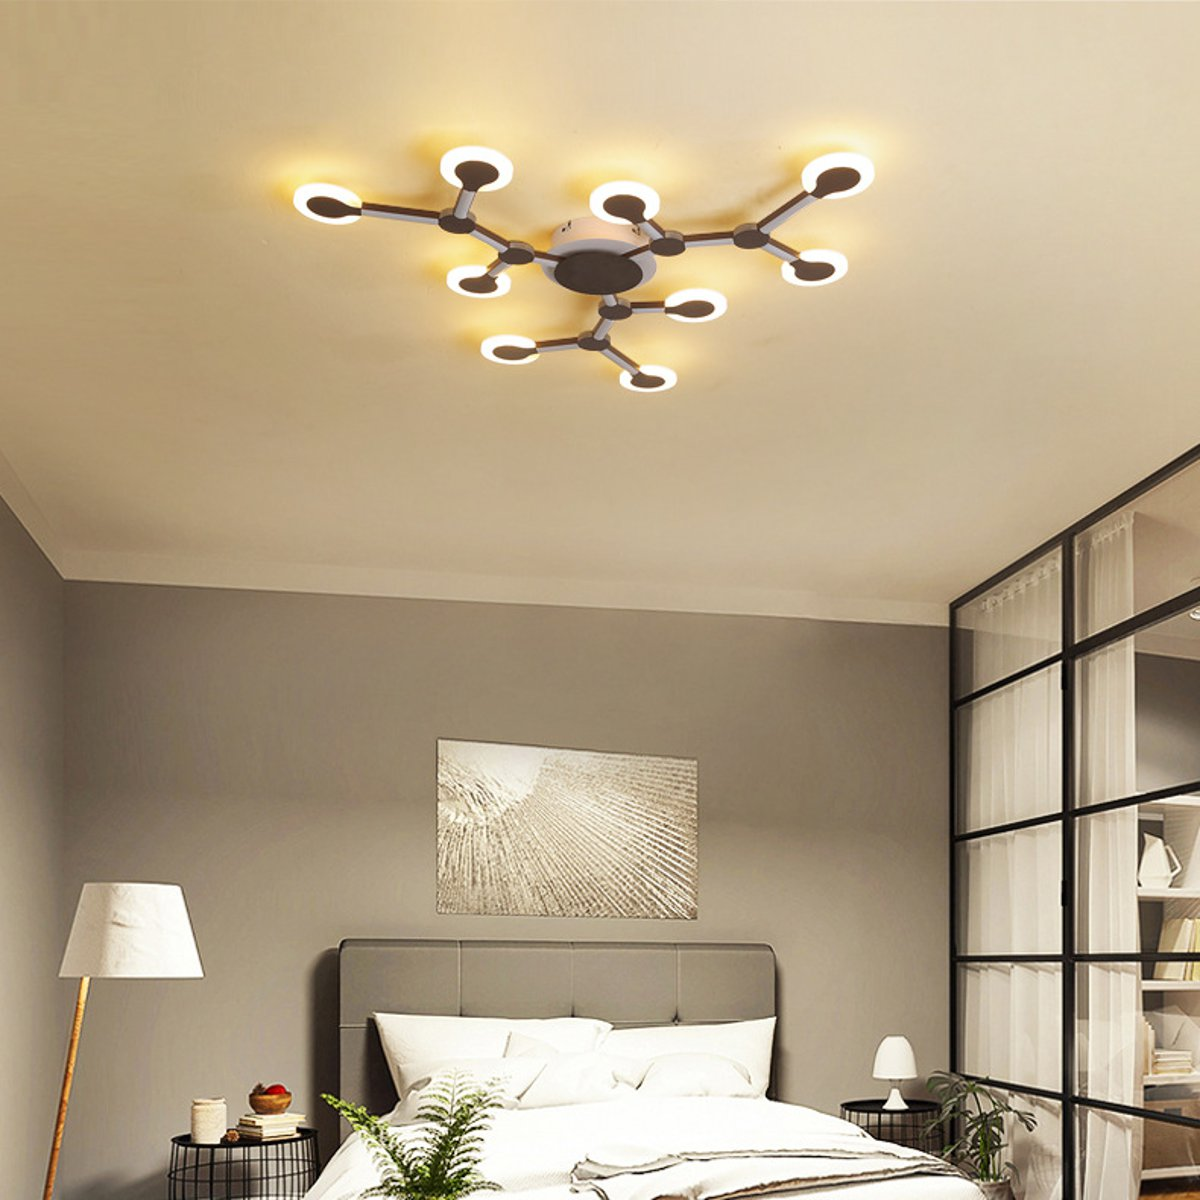 Banggood price history to 9 Heads Acrylic LED Ceiling Light Pendant Lamp Hallway Bedroom Dimmable Fixture